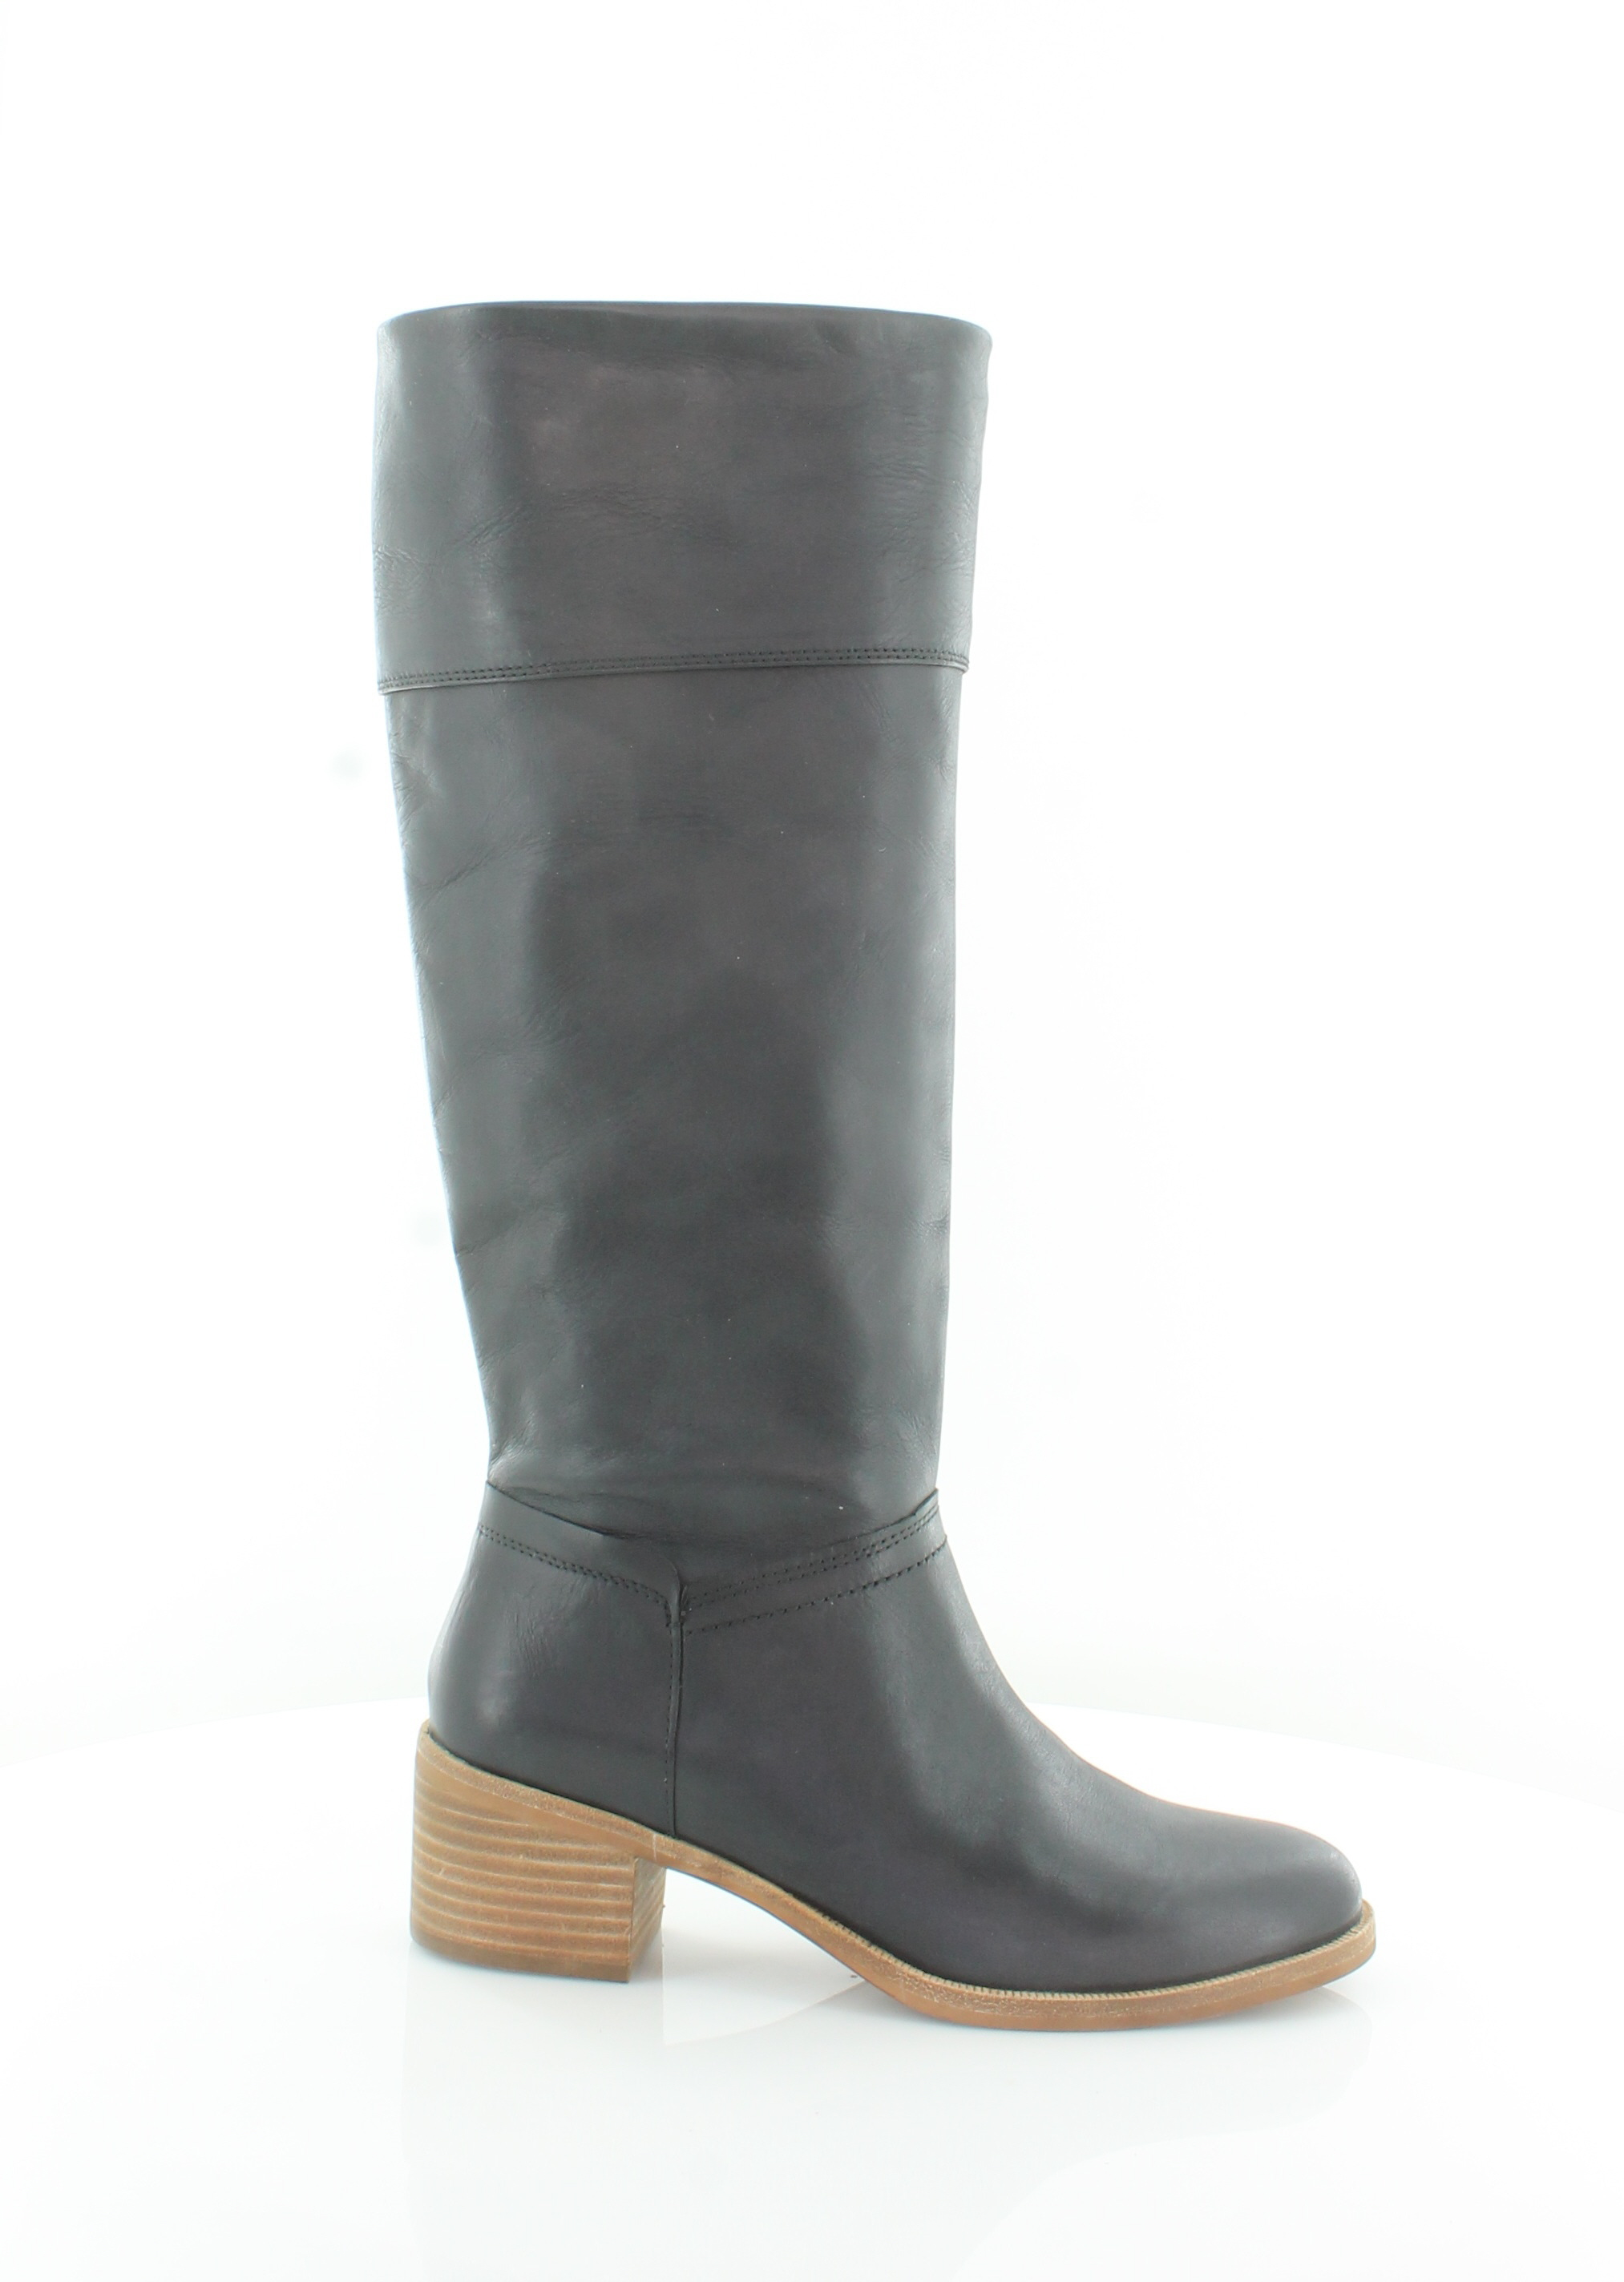 85e7457c3aea UGG NEW CARLIN Tall Black Womens Shoes Size 7 M Boots MSRP  250 ...